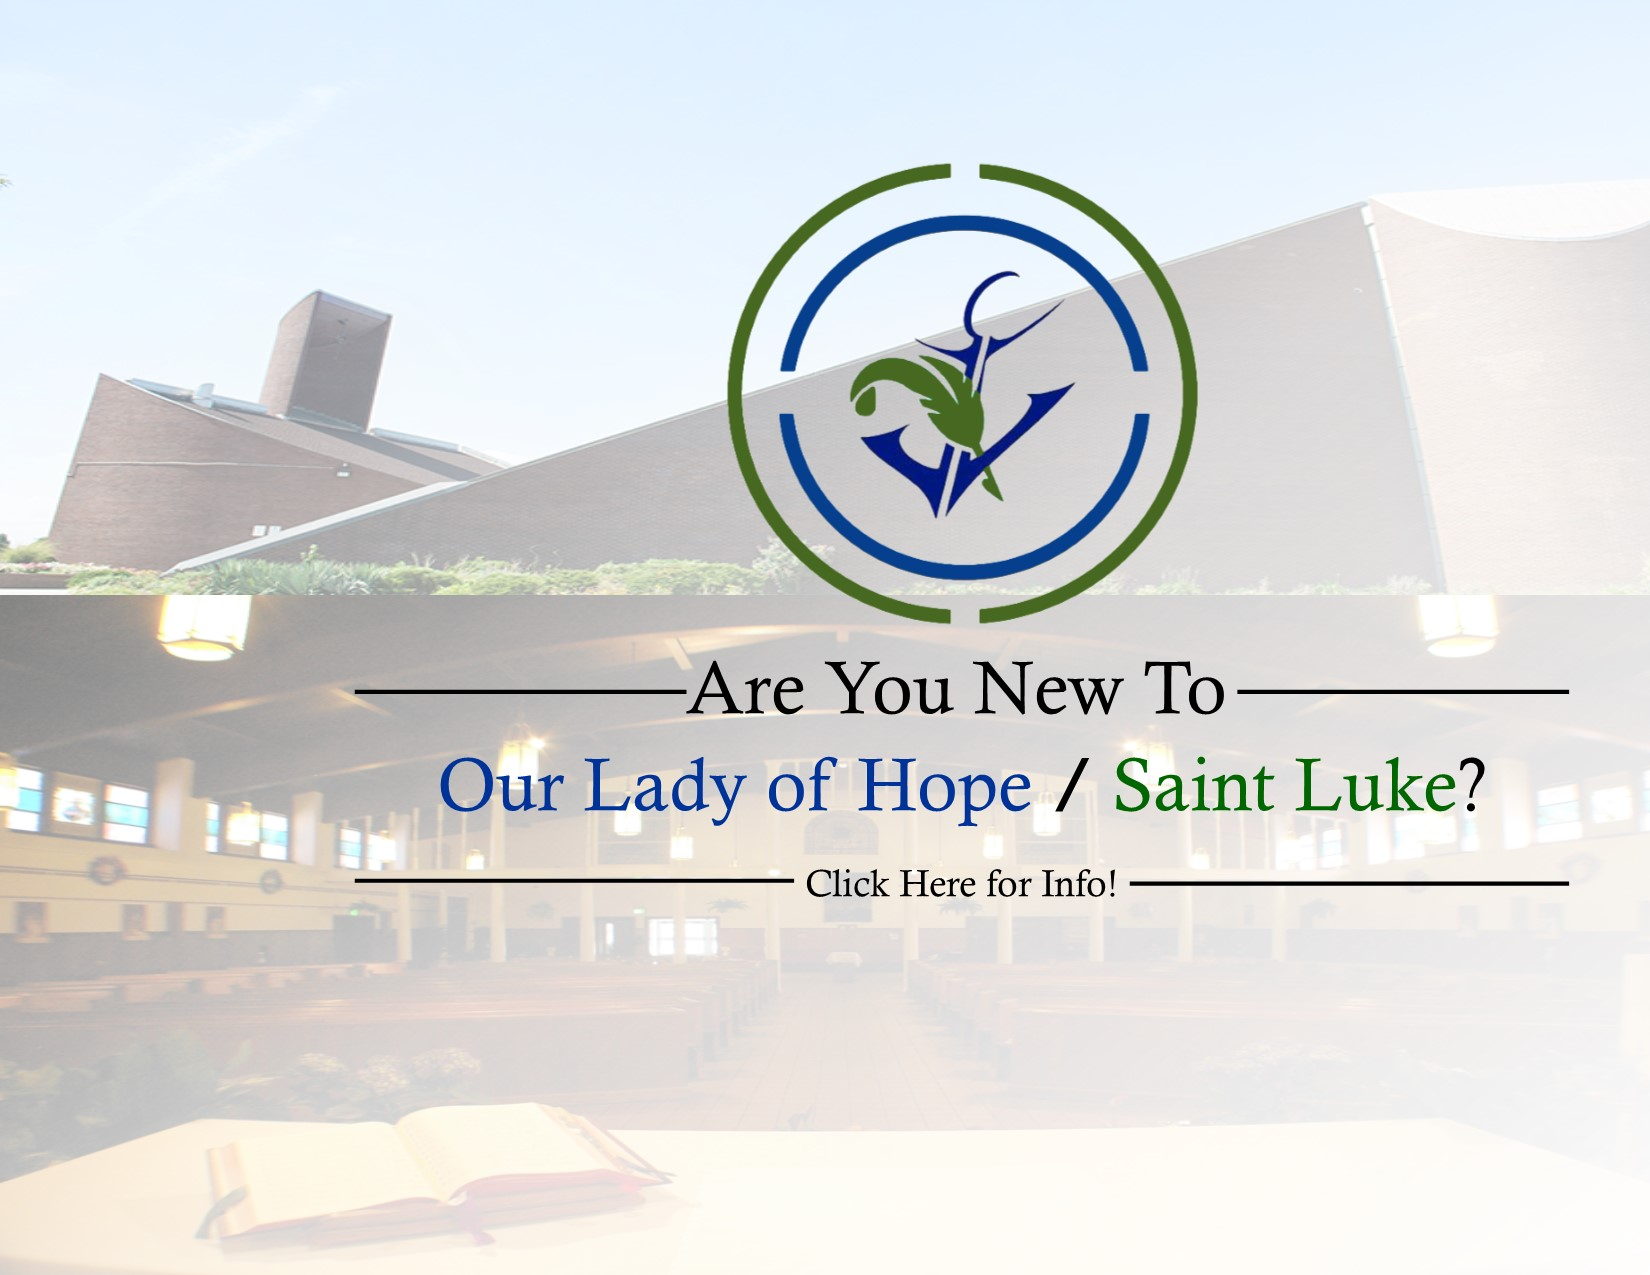 New to the parish website